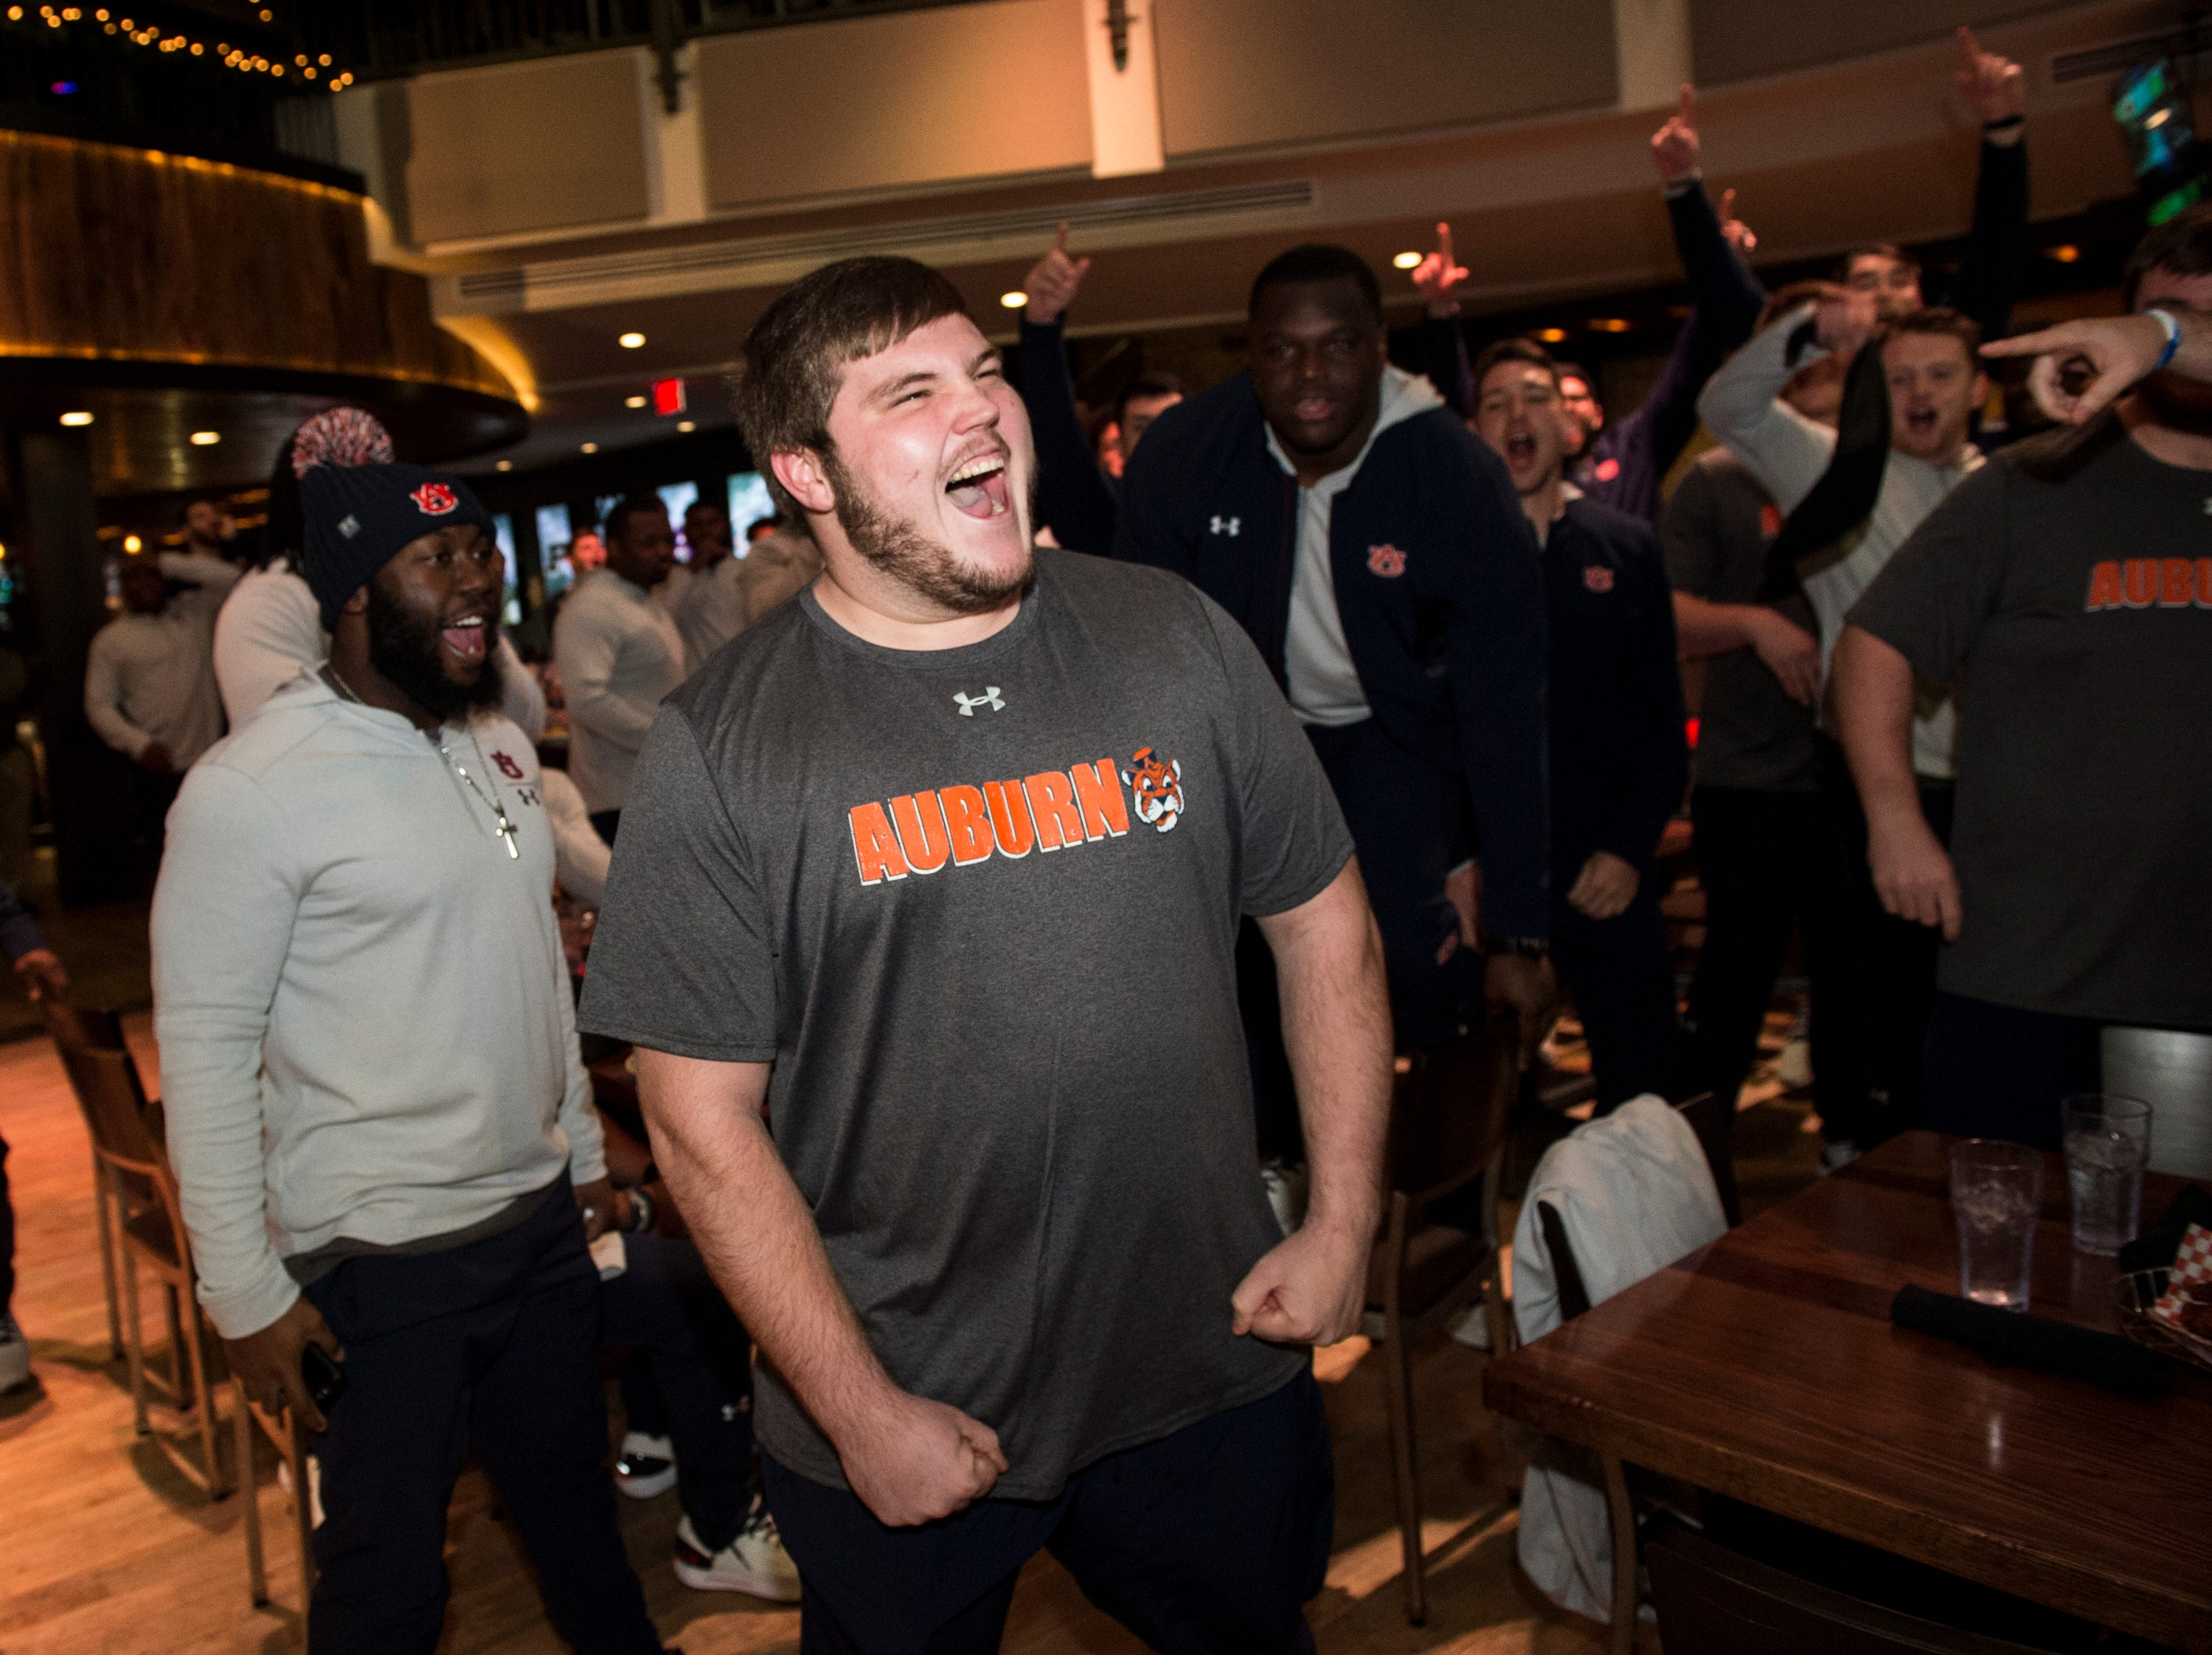 Auburn offensive lineman Peyton Nance (63) gets pumped up for the hot chicken eating competition at Wild Horse Saloon in Nashville, Ten., on Wednesday, Dec. 26, 2018. Auburn takes on Purdue in the Music City Bowl Friday.